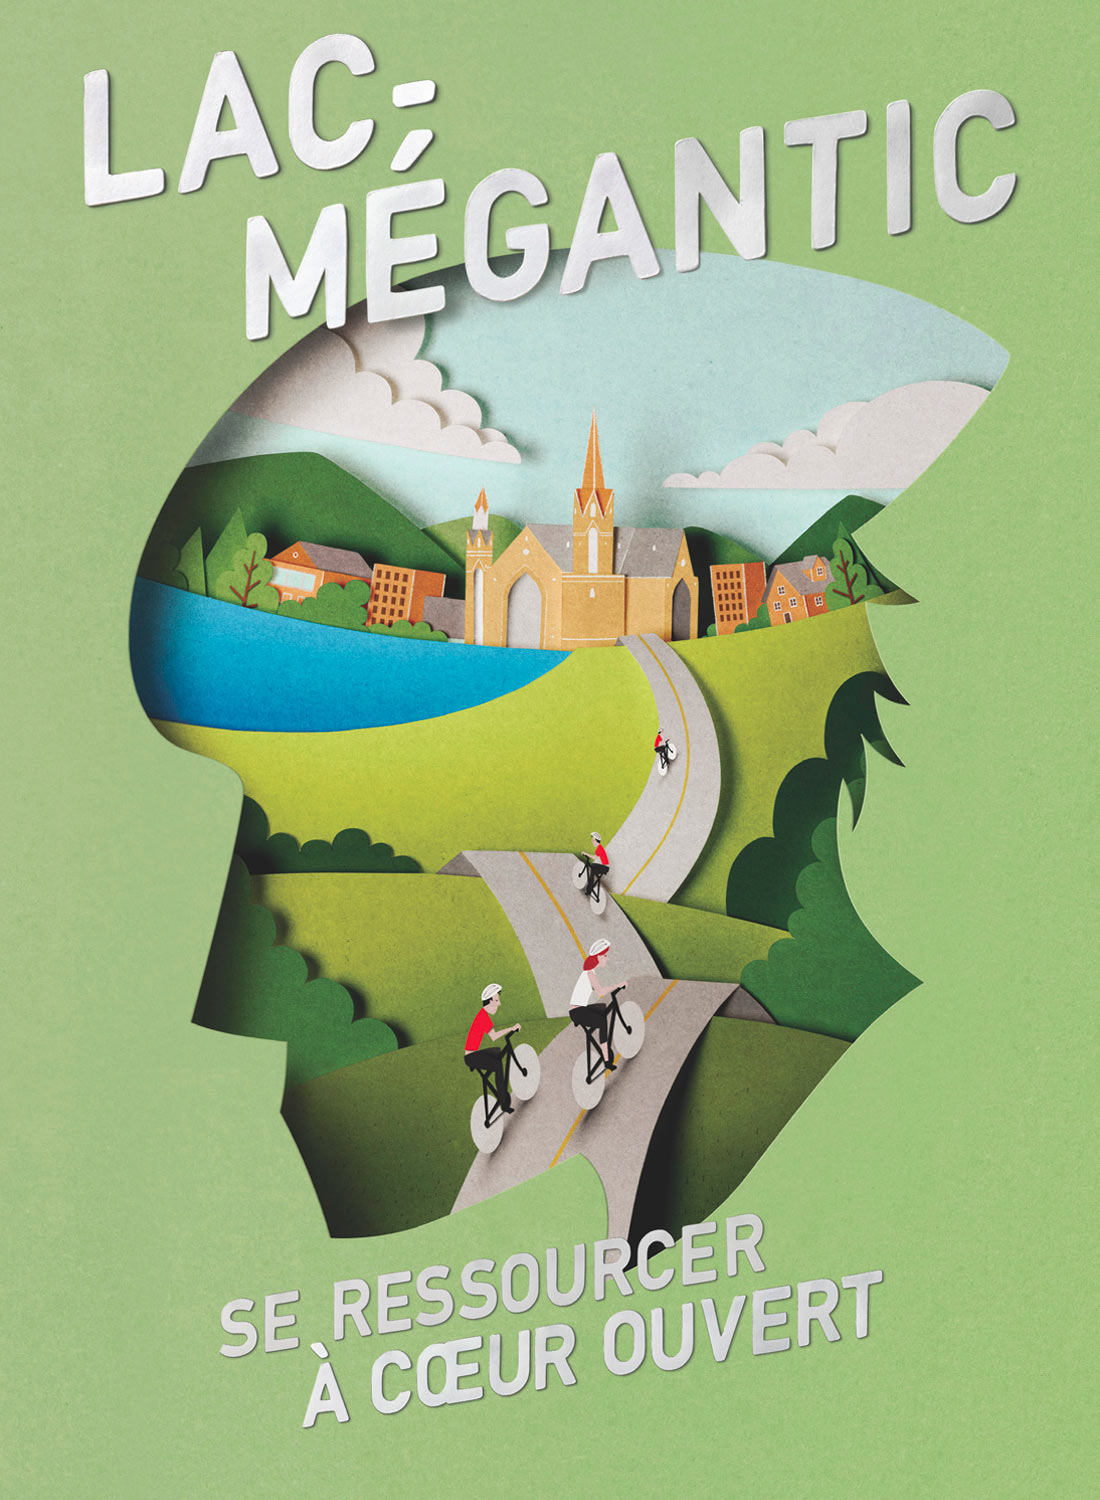 Papercut illustration. Paper art. Cut out. Lac Mégantic. Advertising illustration.